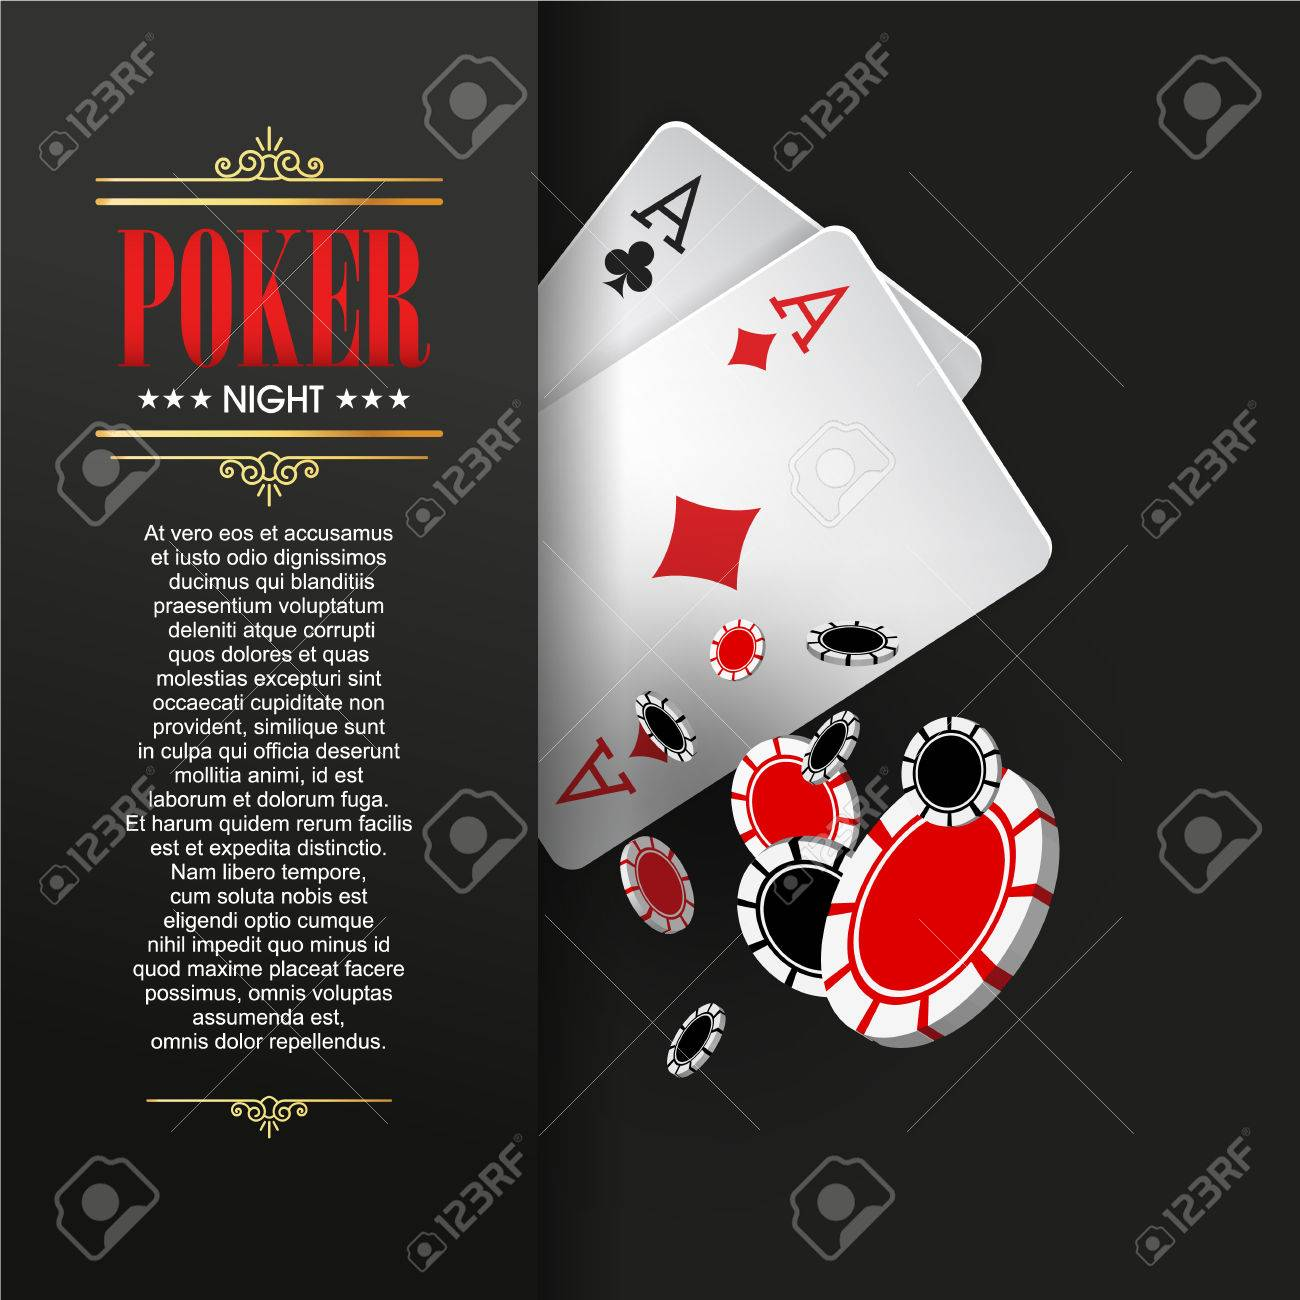 Poker Party Invitation Template Images - Party Invitations Ideas